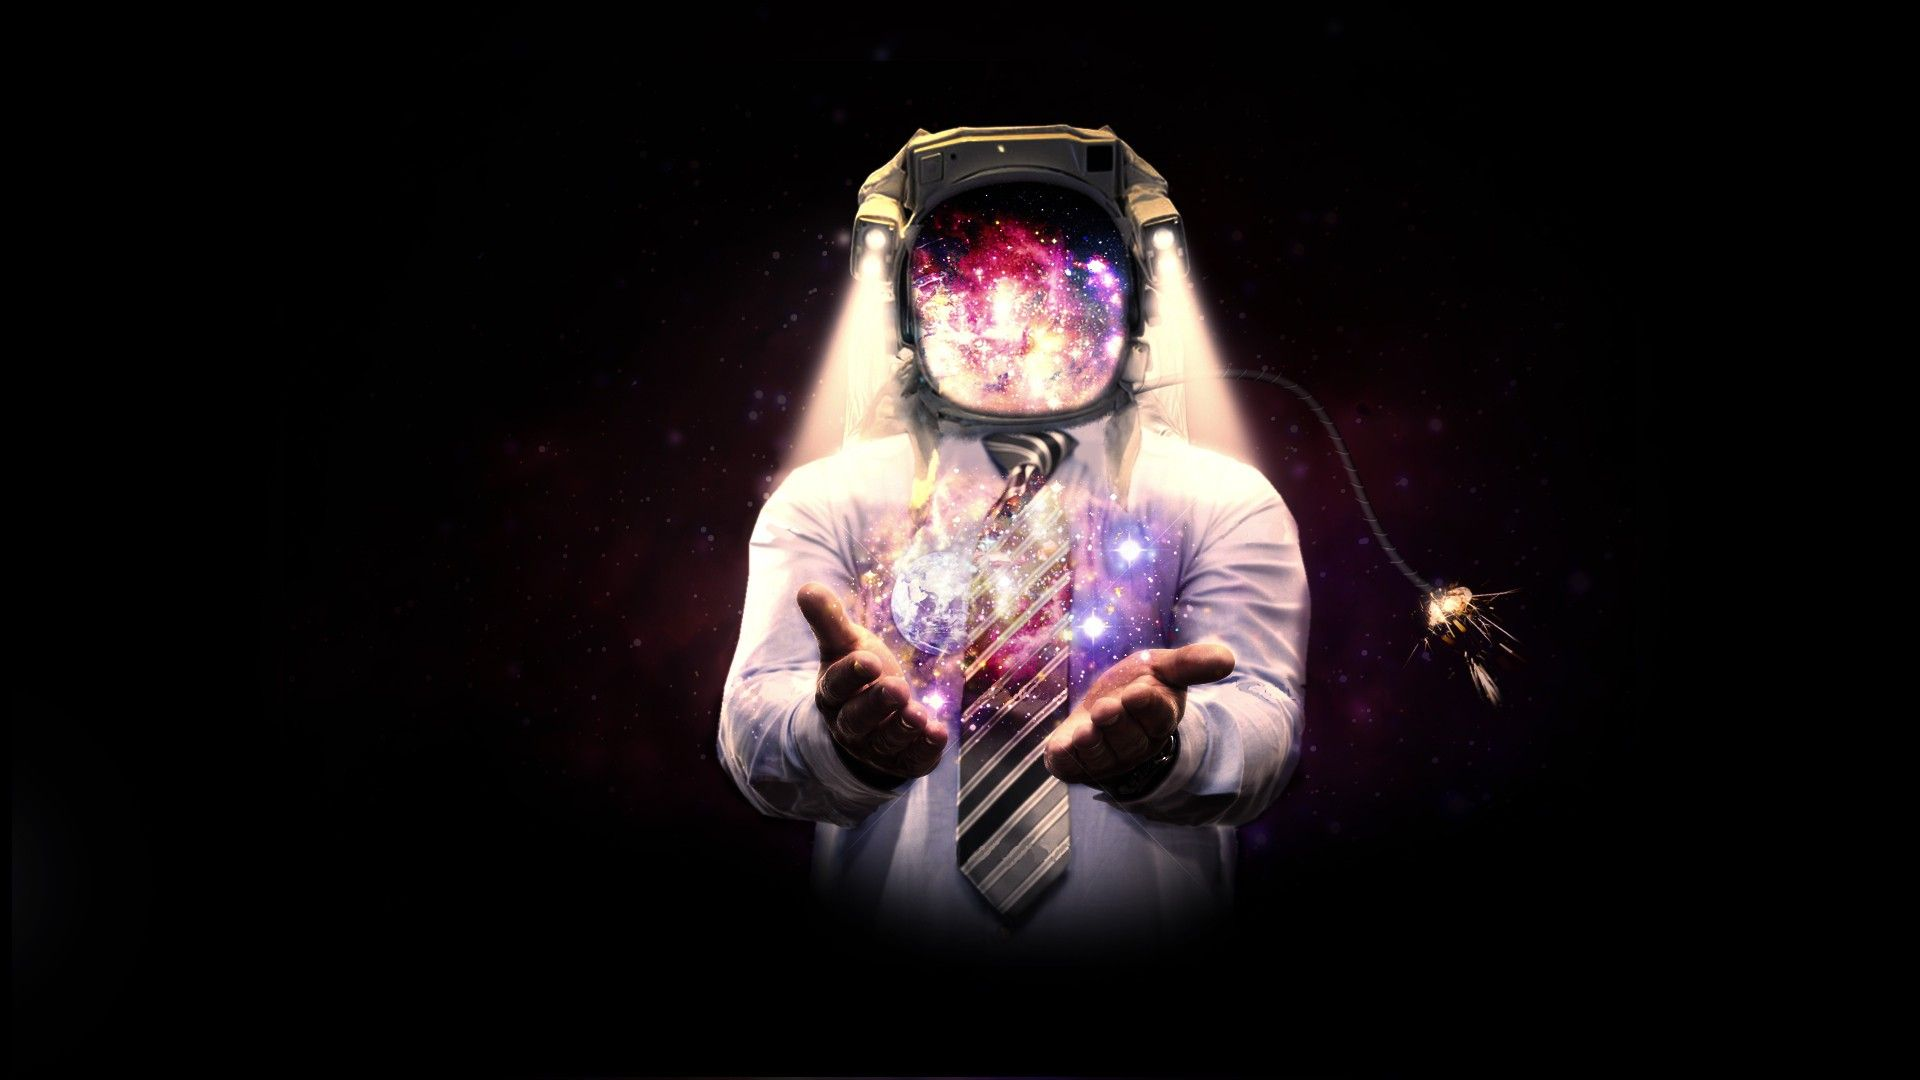 Outer Space Hands Tie Astronauts Sparks Artwork 1920x1080